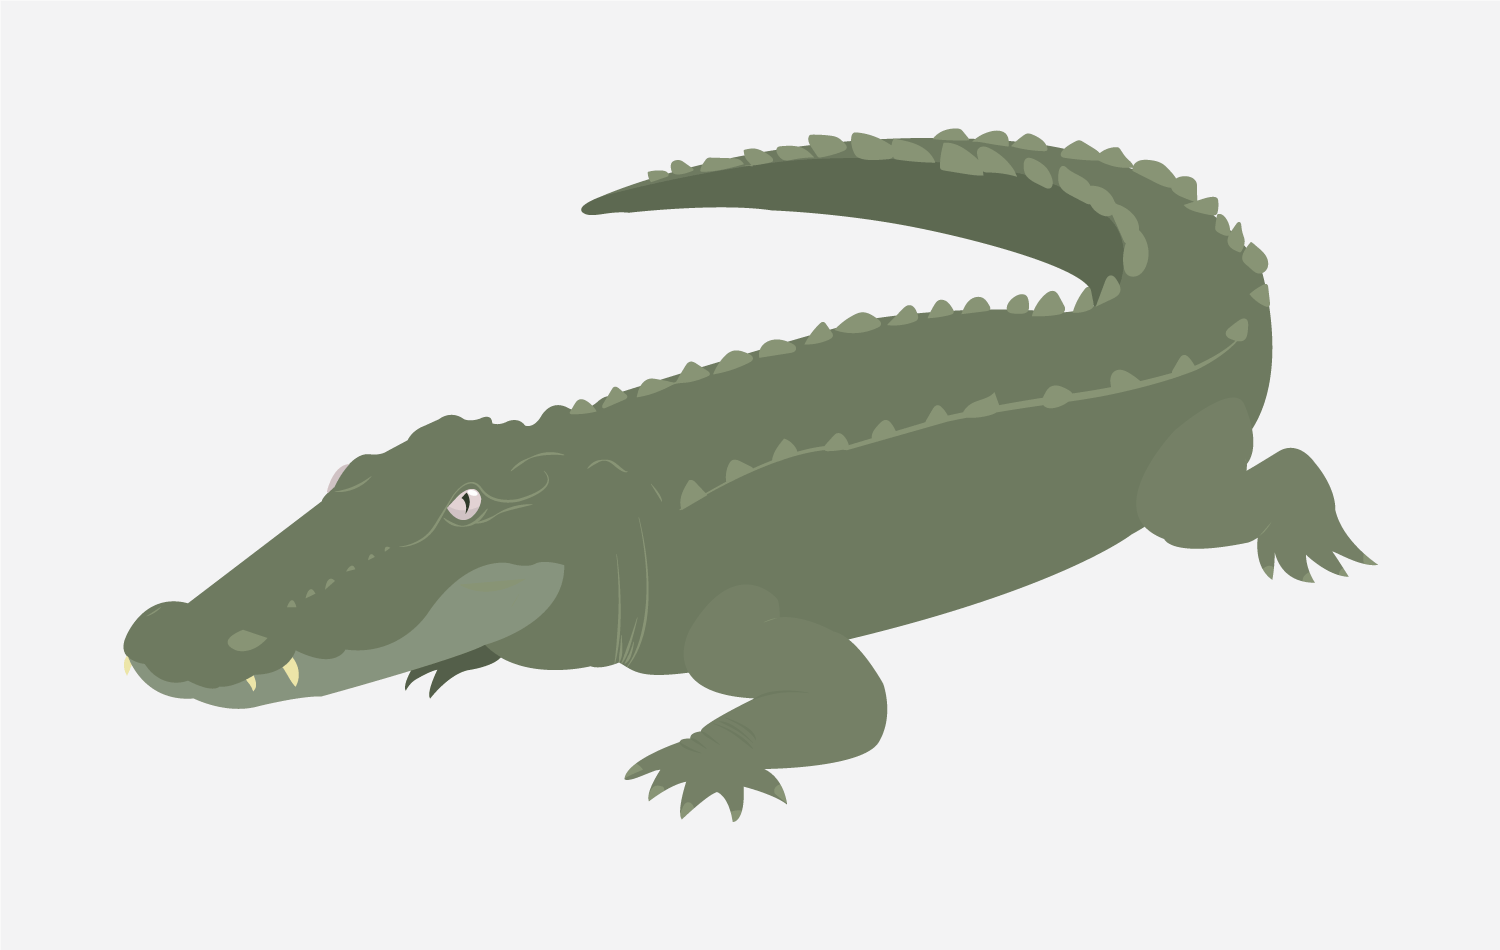 Alligator Illustration